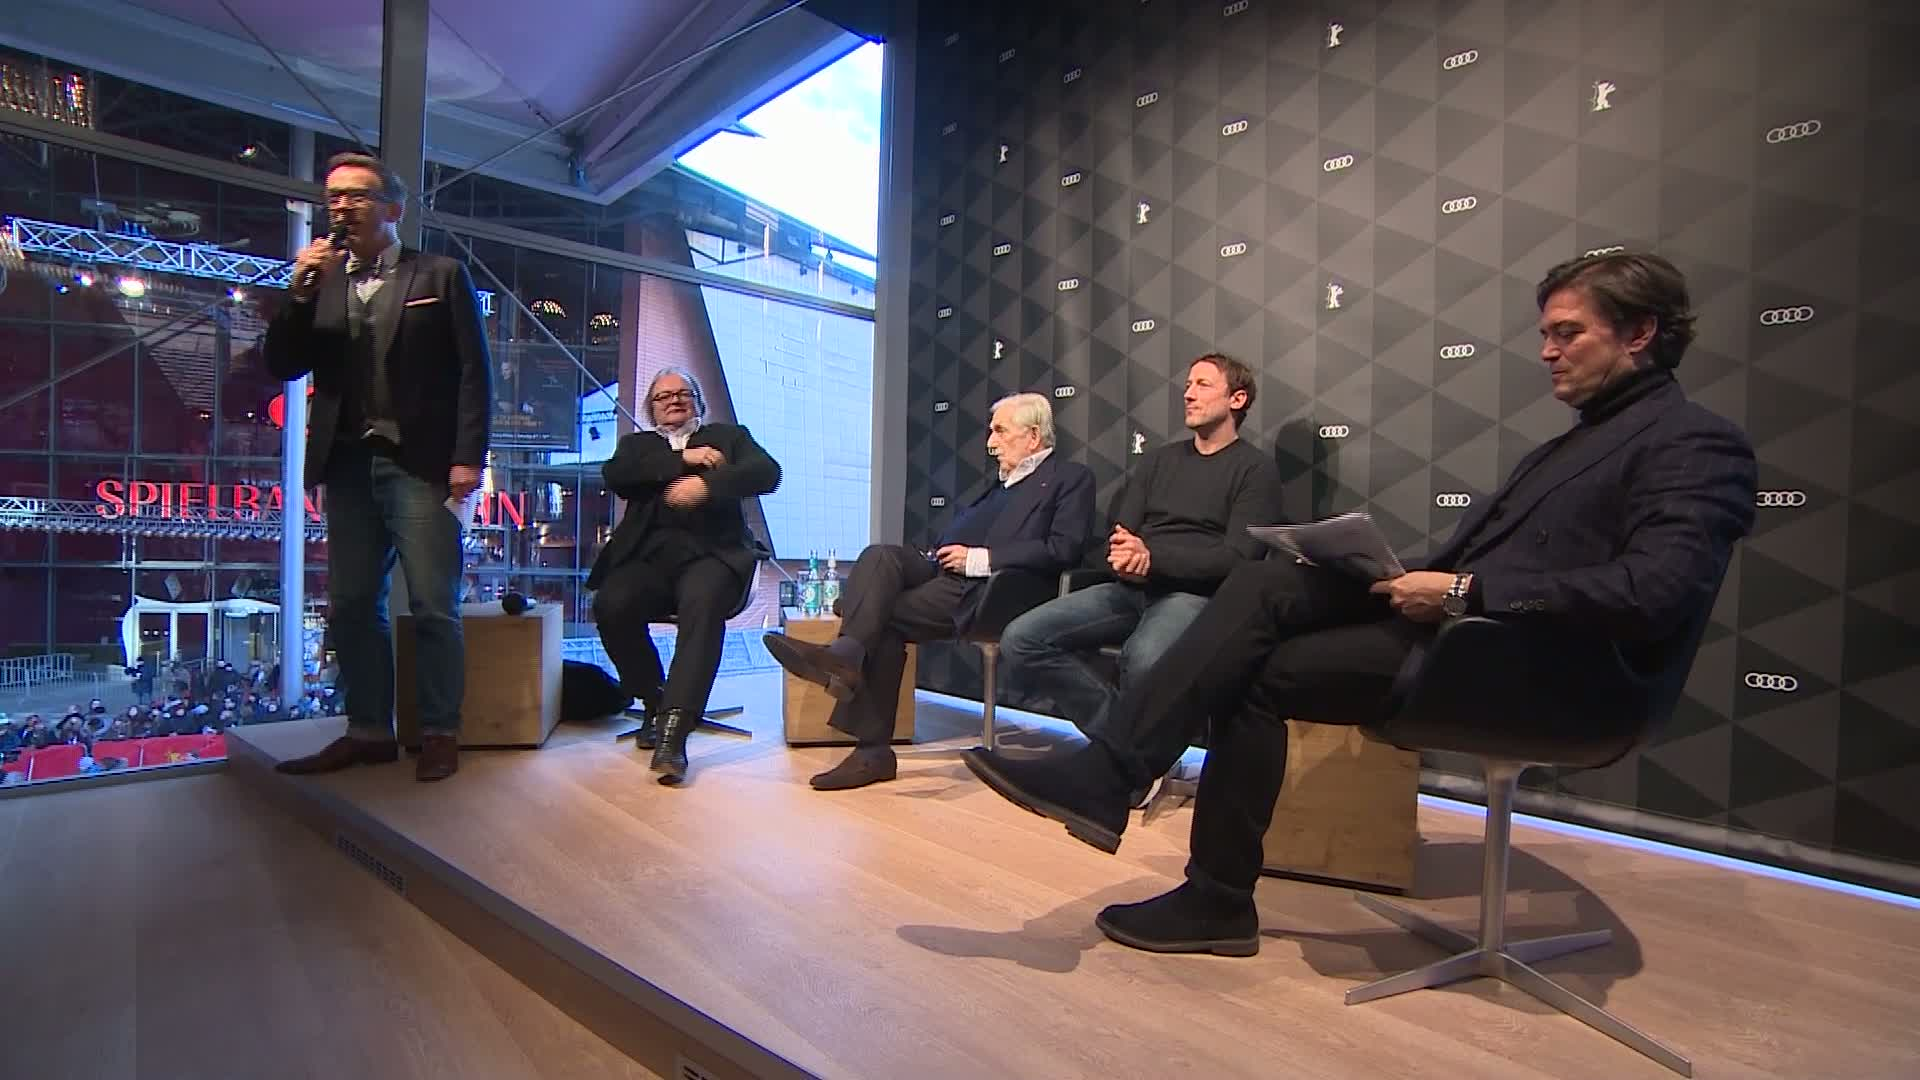 Berlinale 2015: Audi Panel Cars in Films